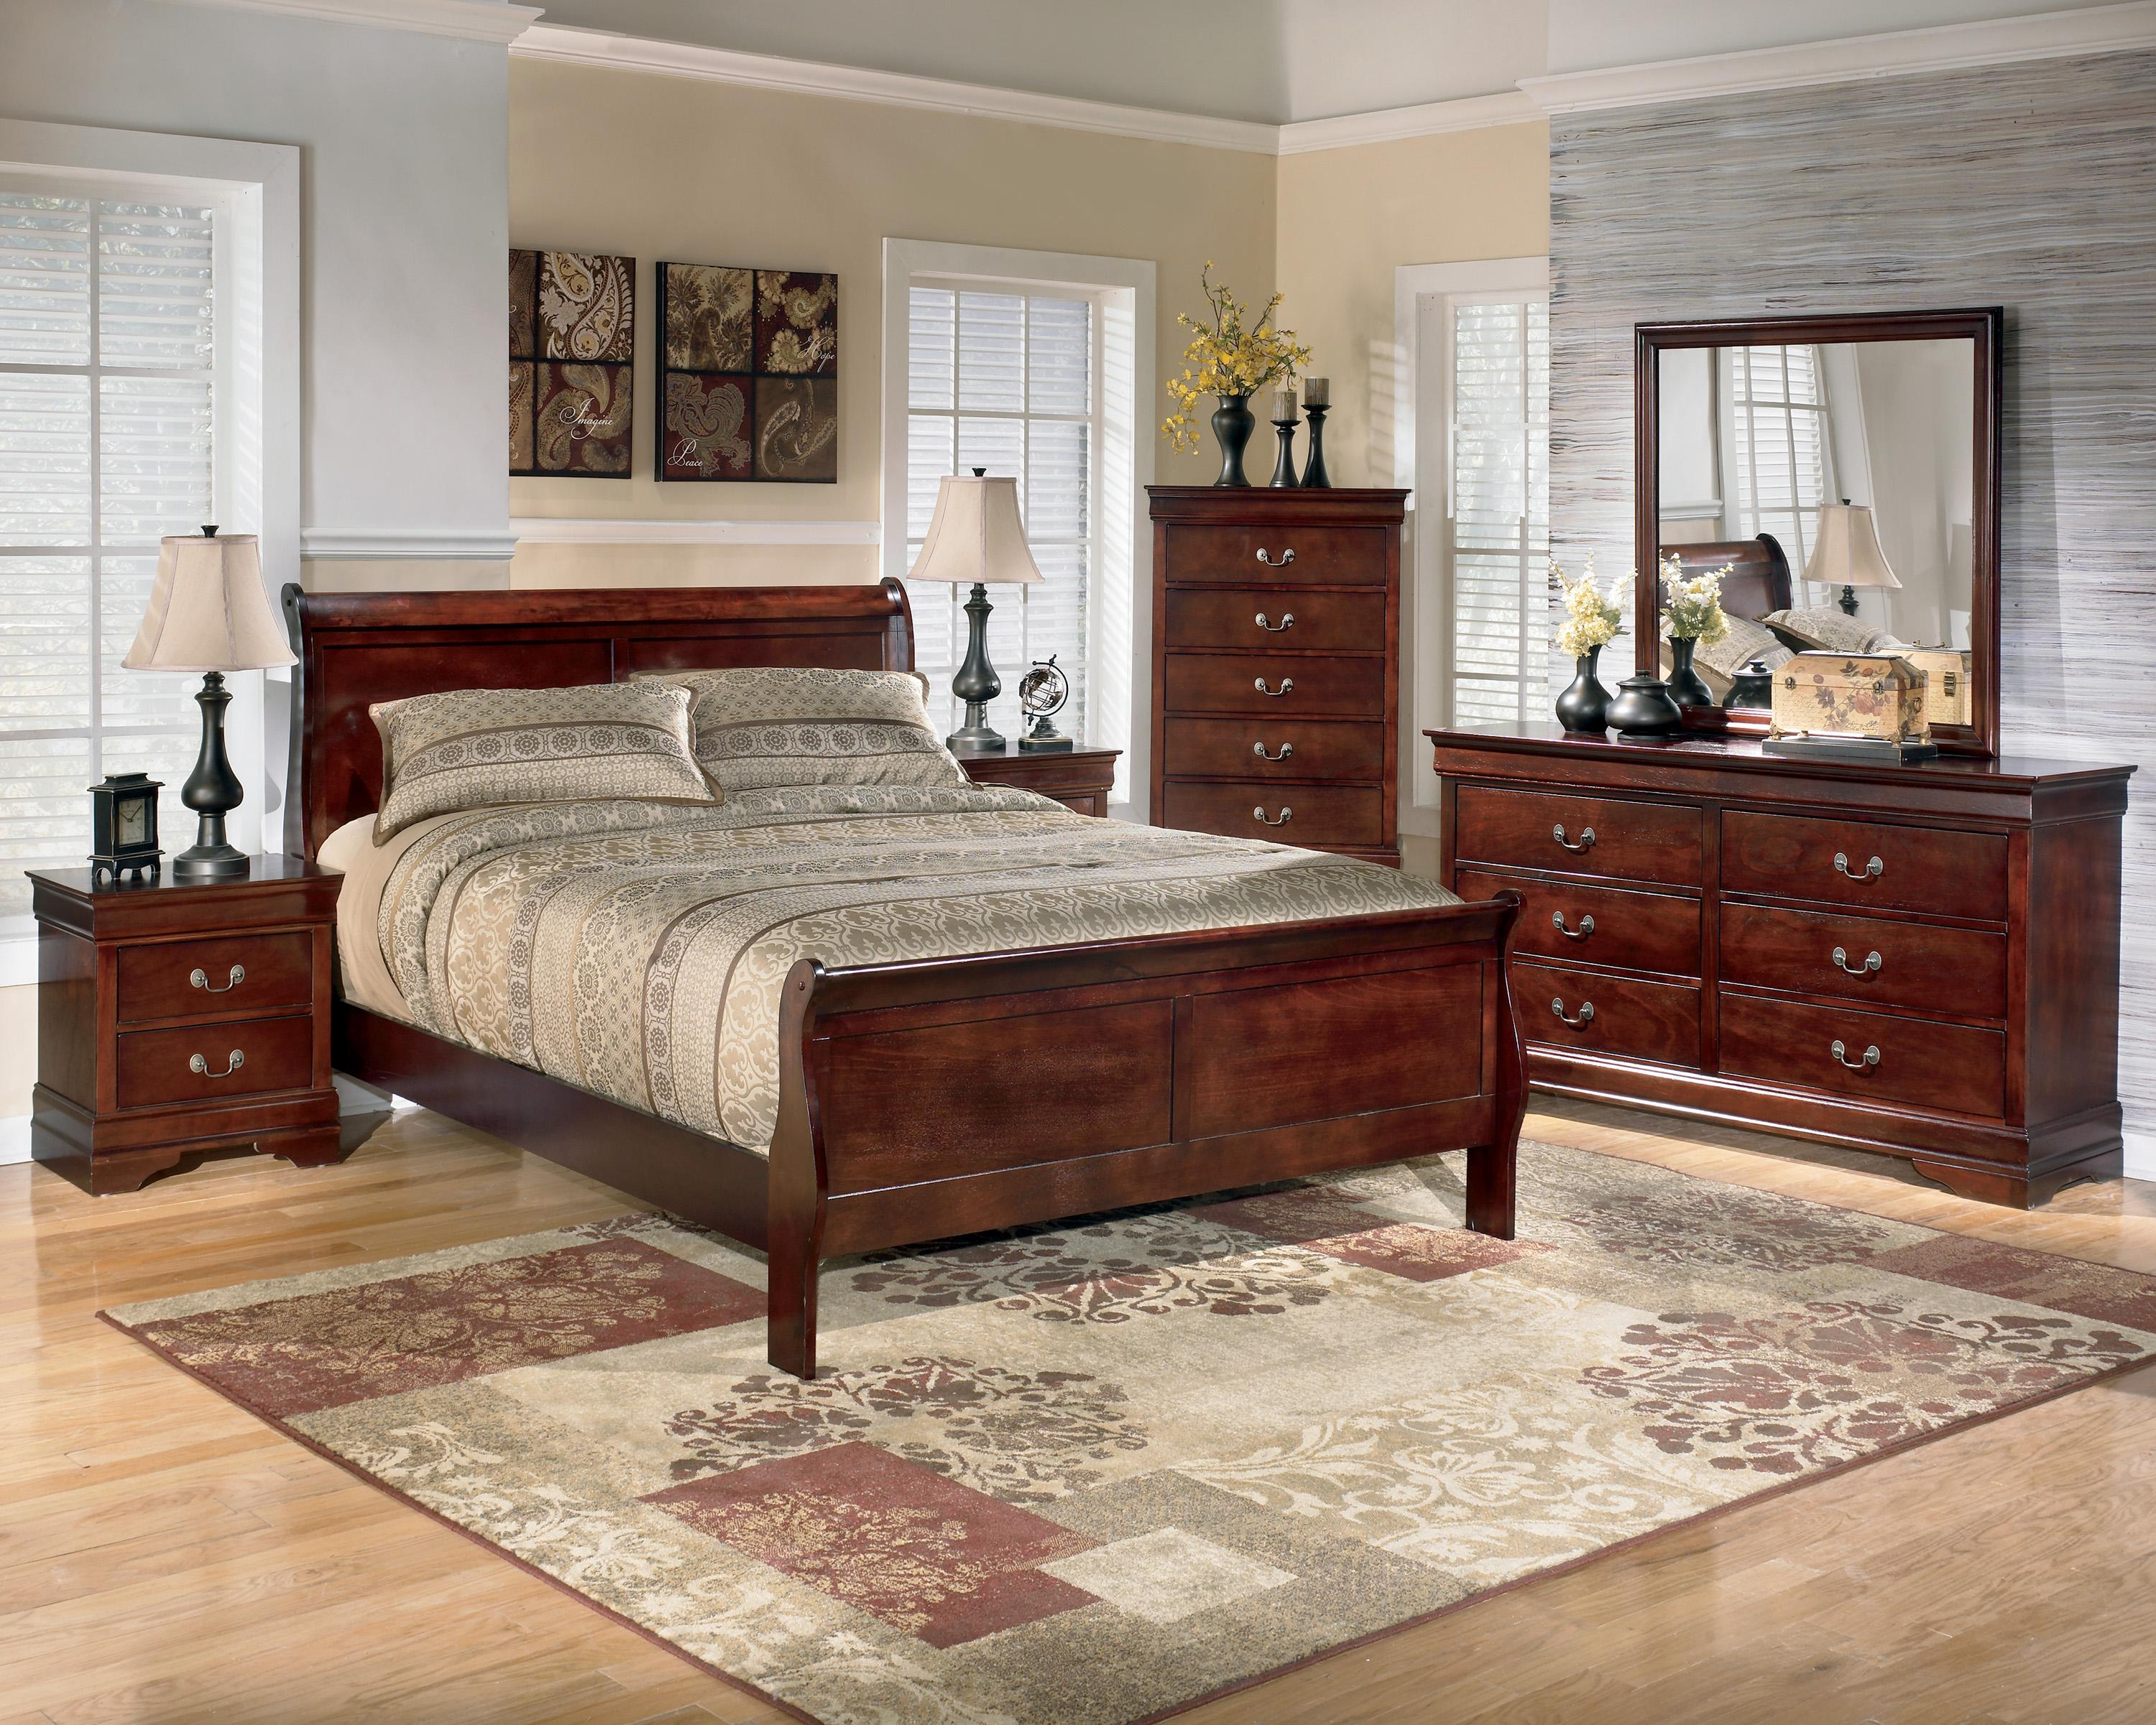 Alisdair 3 Piece Queen Bedroom Group by Signature Design by Ashley at Northeast Factory Direct